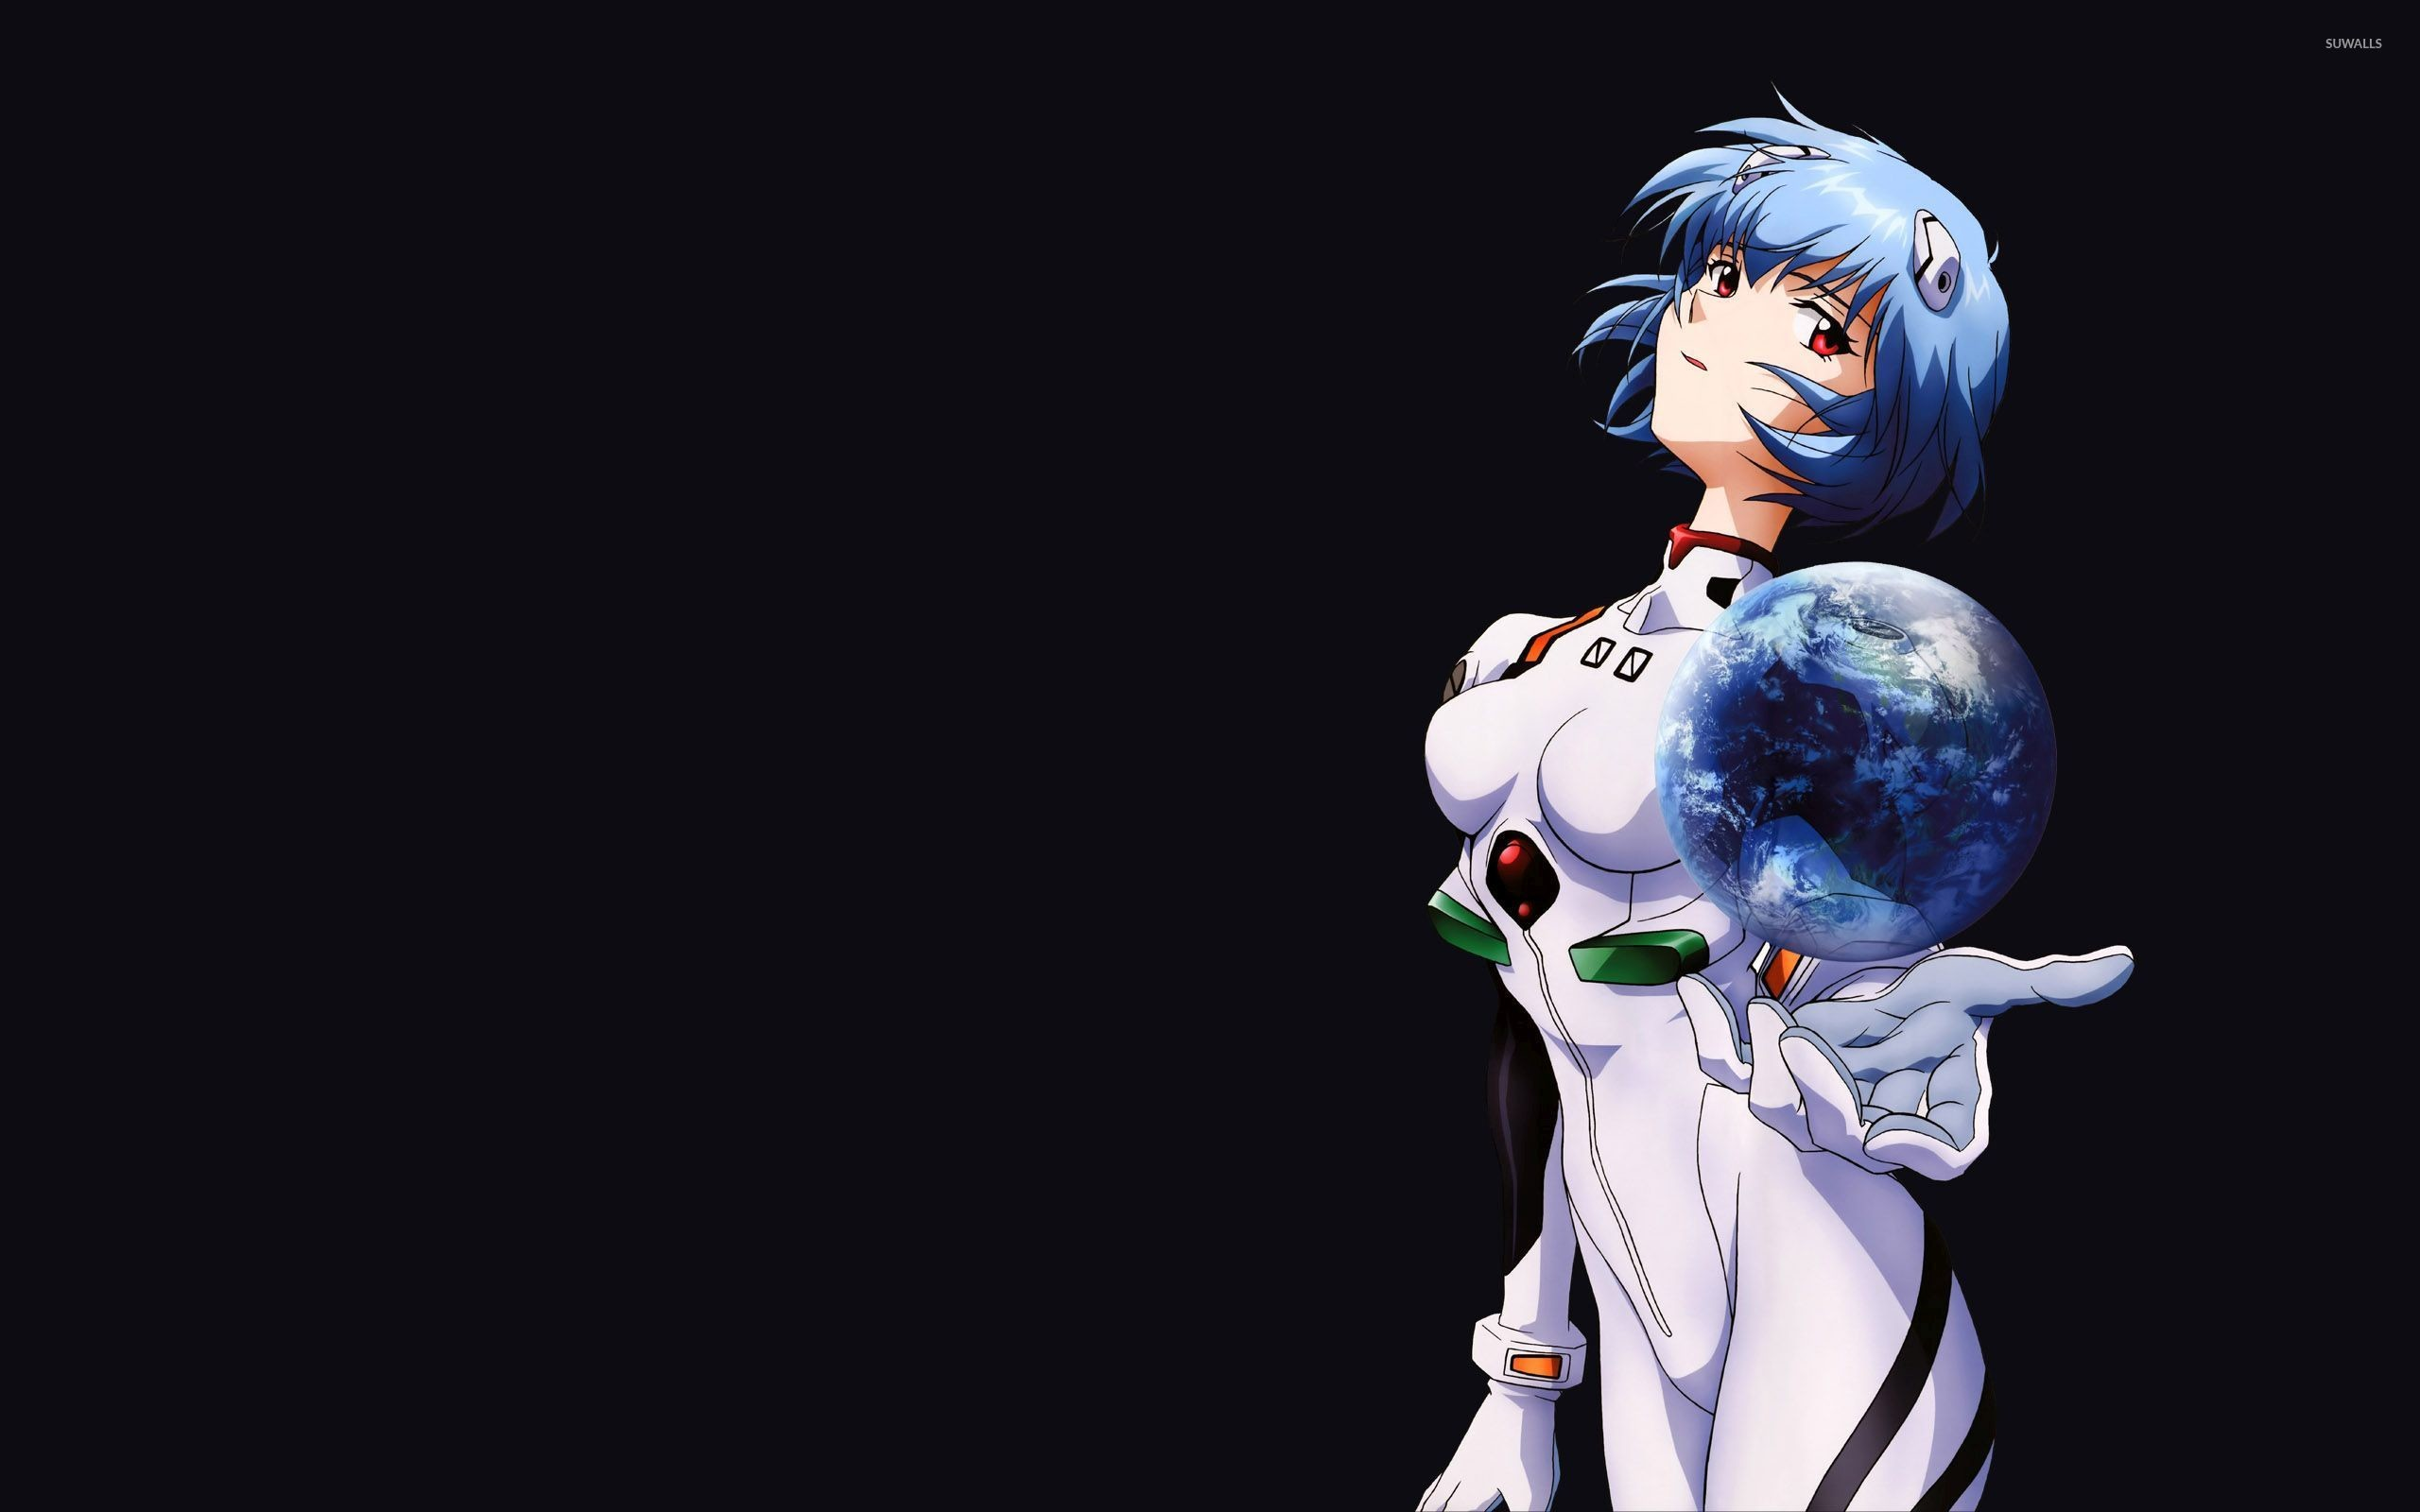 2560x1600 Rei Ayanami - Neon Genesis Evangelion wallpaper - Anime wallpapers .